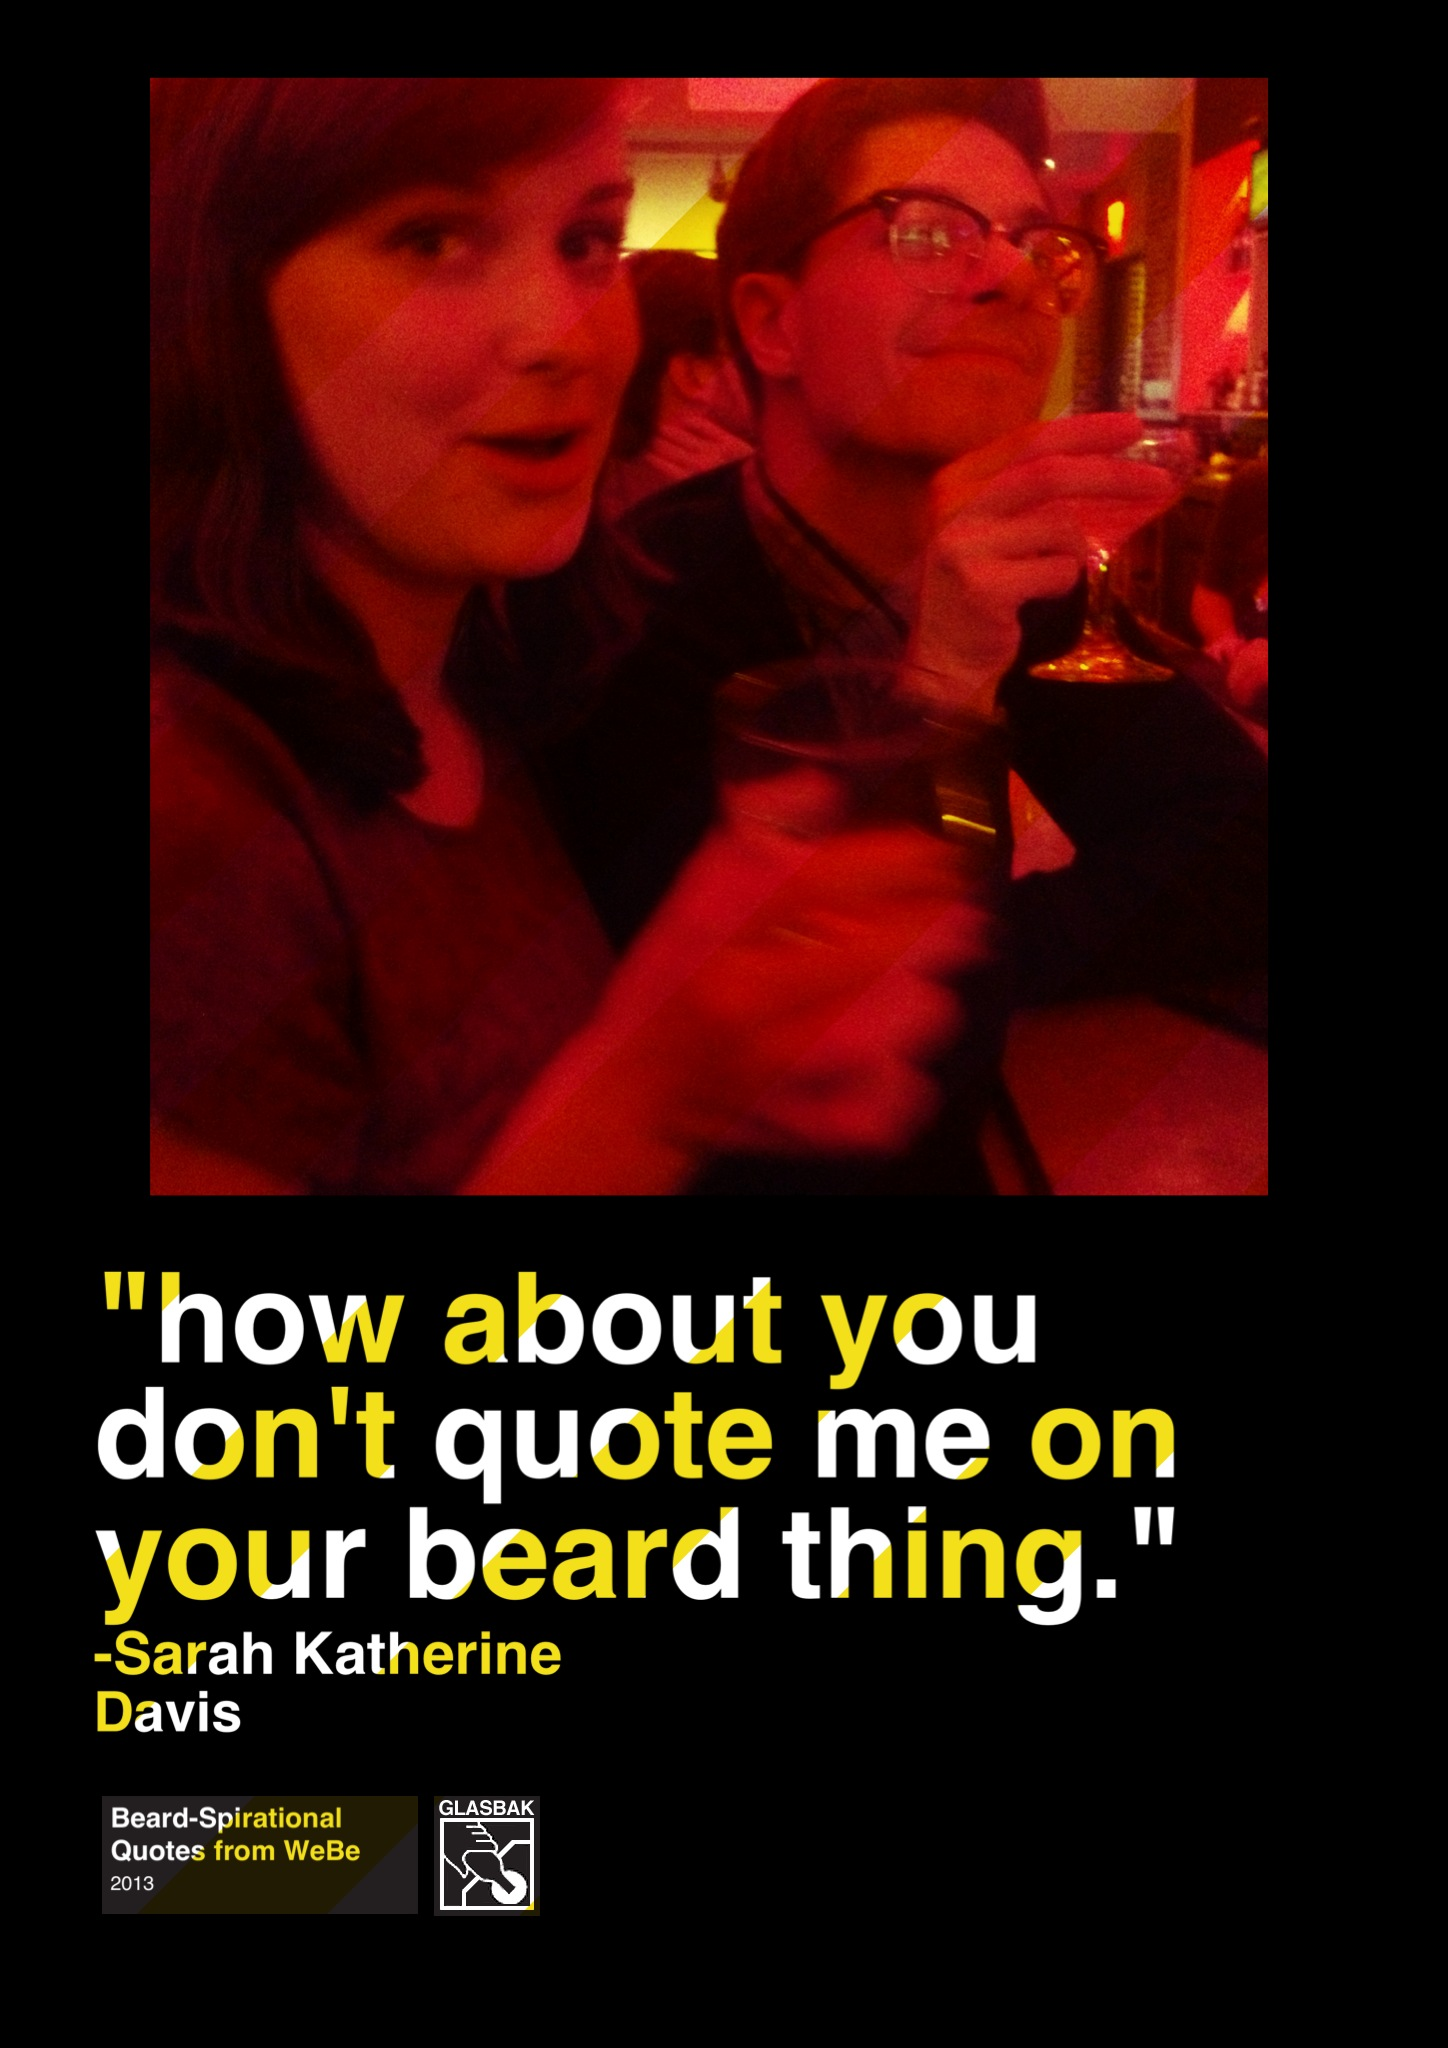 2013-05-06_how about you don't quote me on your beard thing.jpg